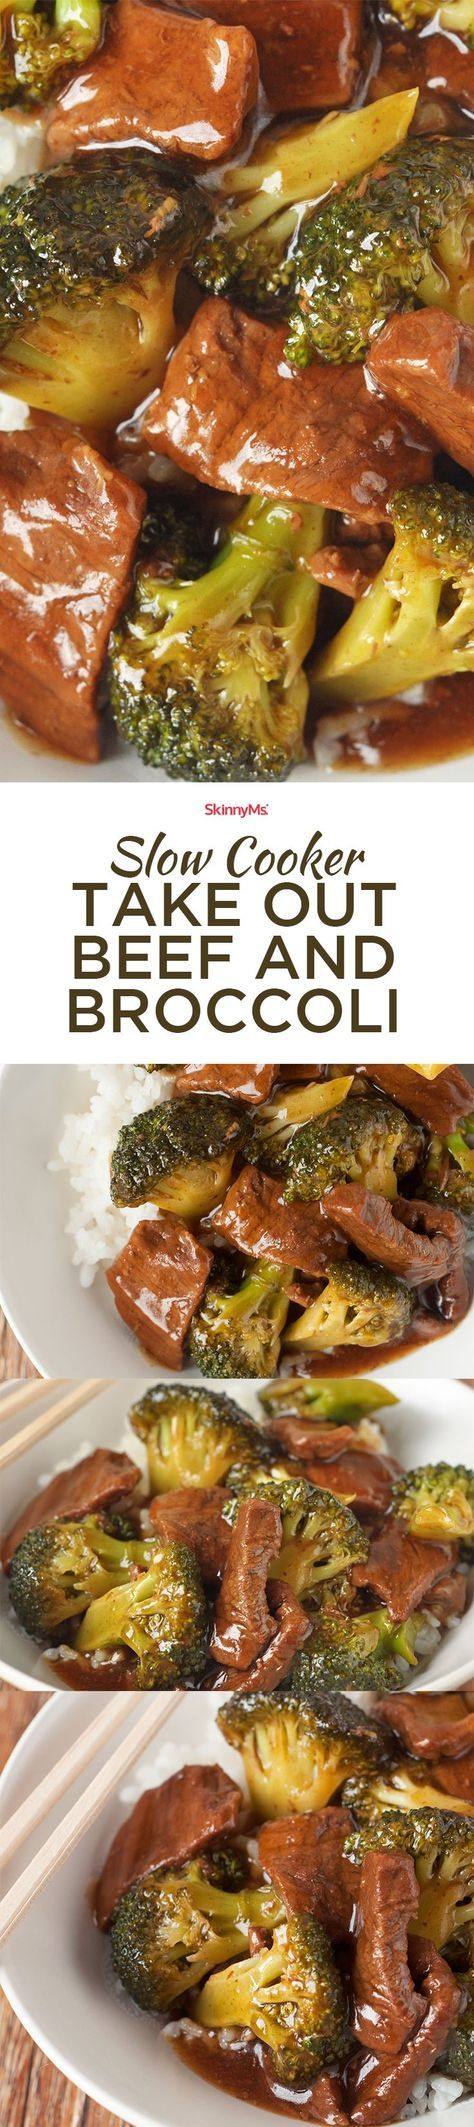 Put the take-out menu down! Try a healthier tastier alternative with our Slow Cooker Take Out Beef and Broccoli